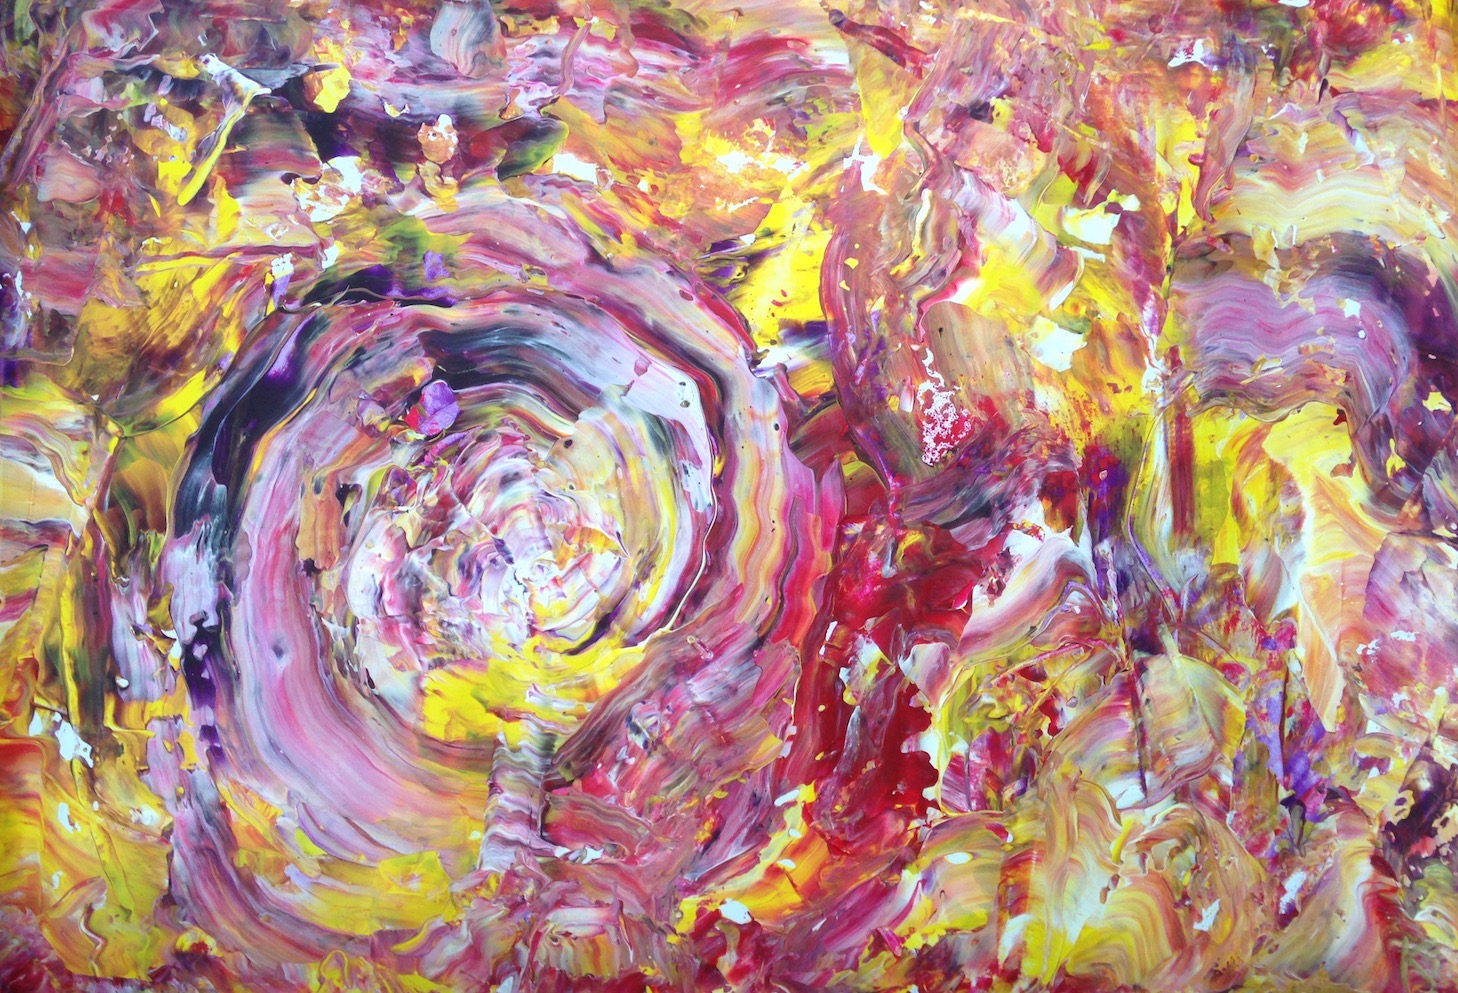 Rose (not available)